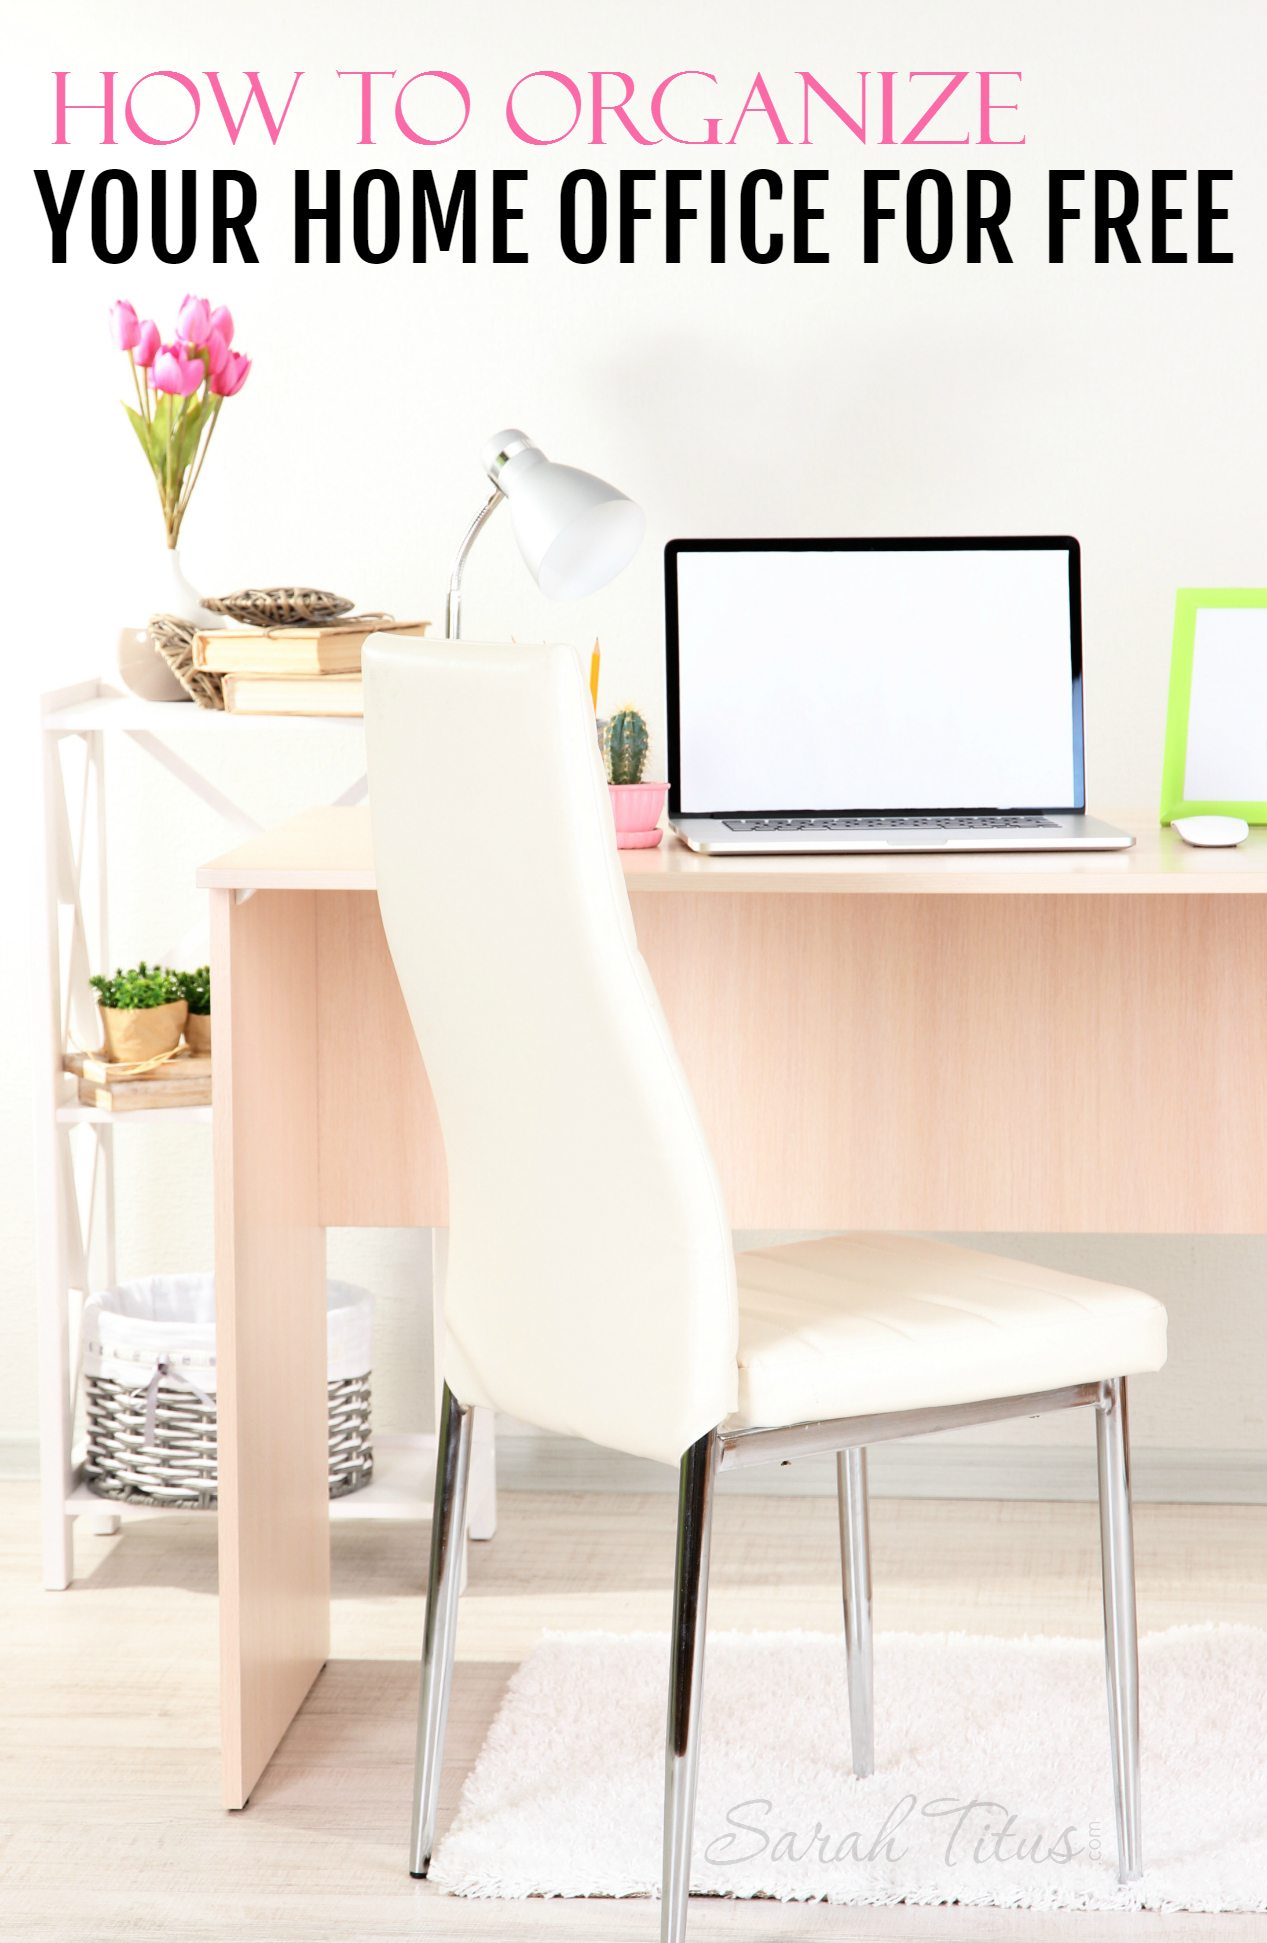 How to Organize Your Home Office for Free - Sarah Titus